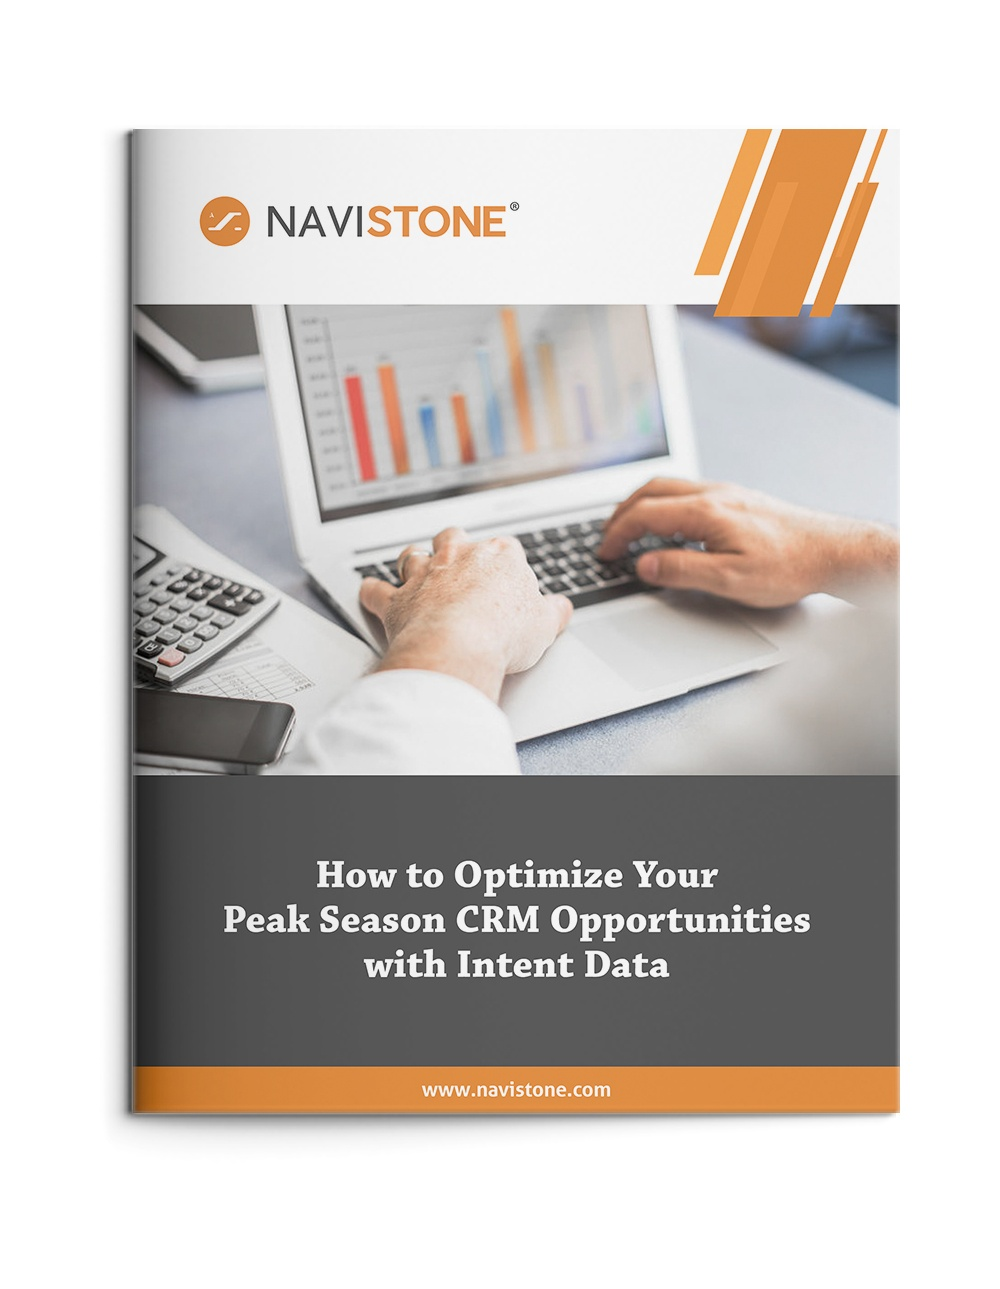 How to Develop Effective CRM Growth Strategies All Year